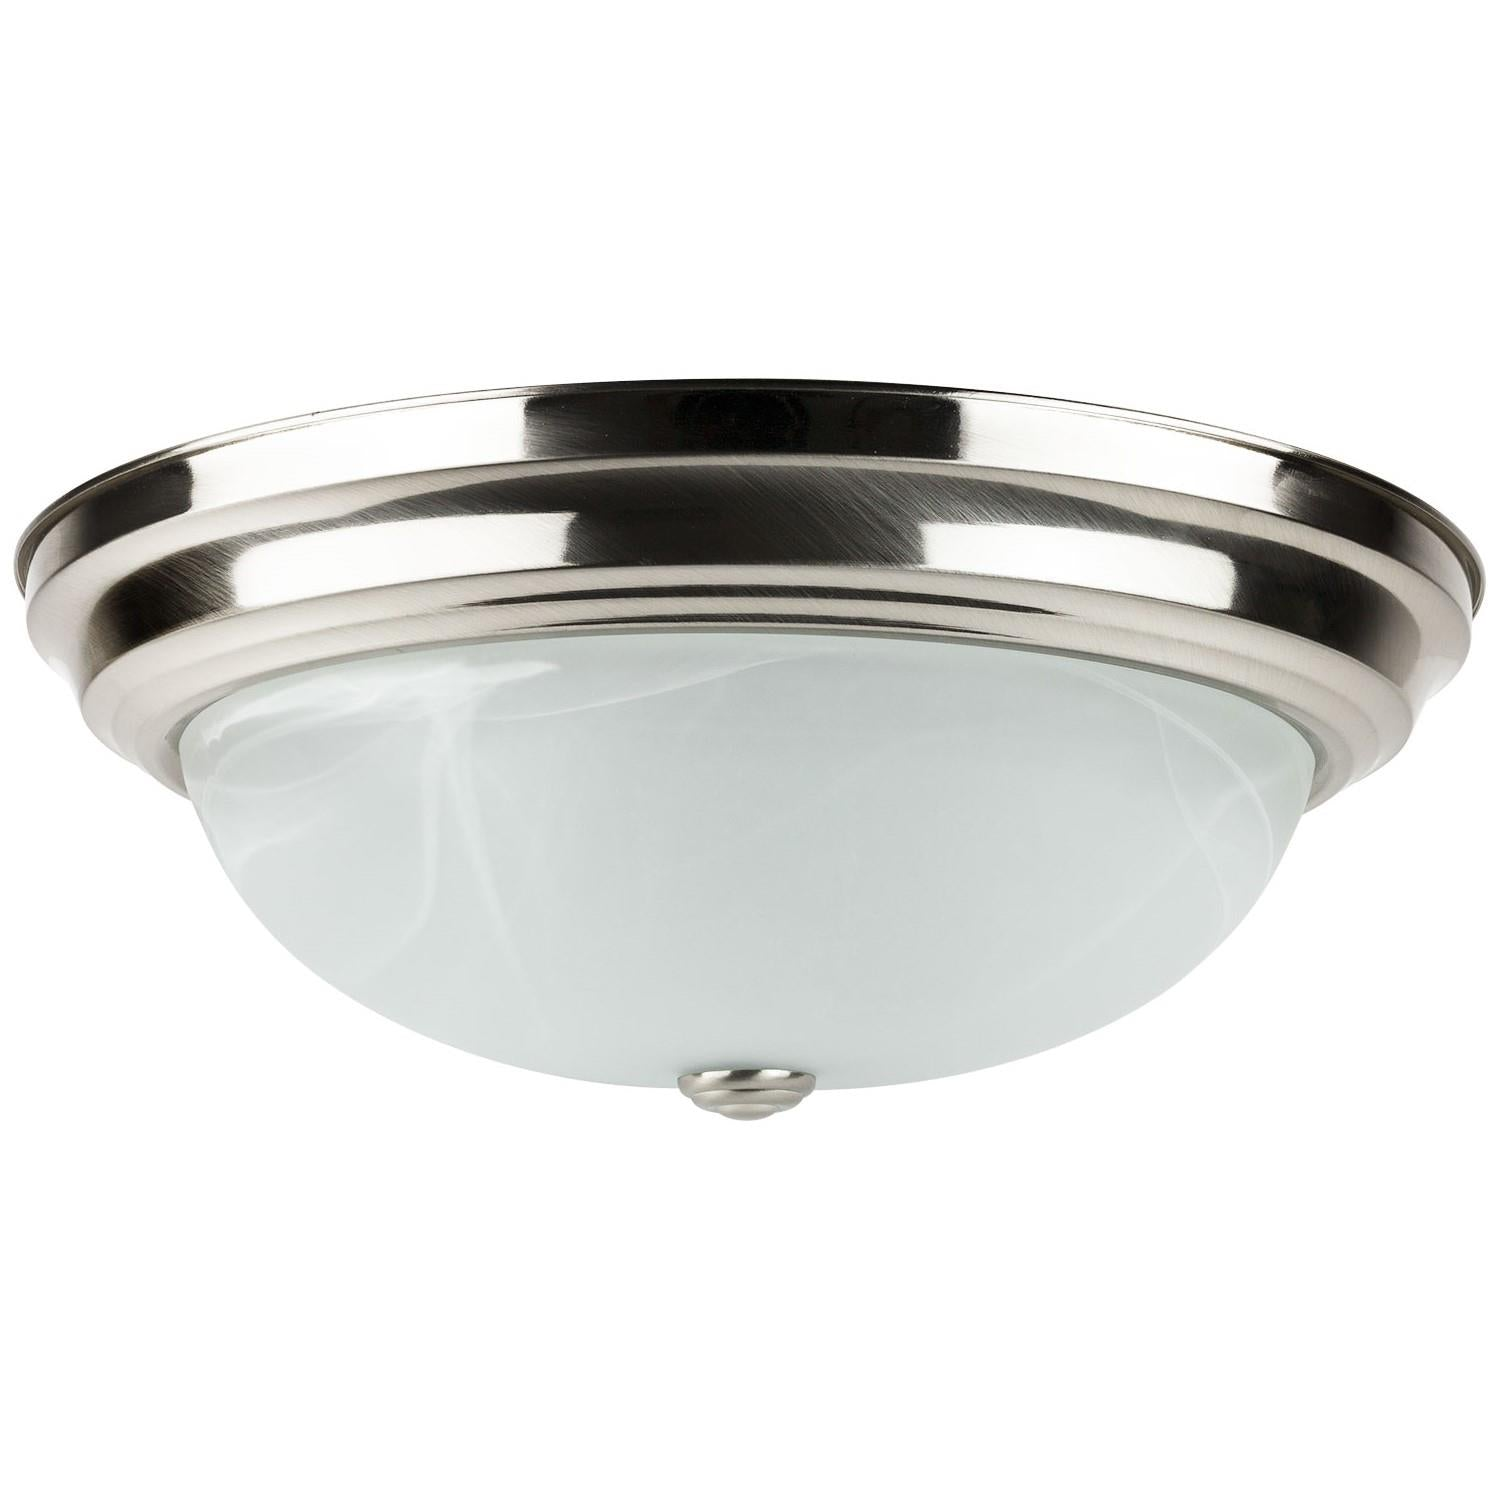 SUNLITE 15in 23w Decorative Dome Style 3000K in Brushed Nickel Finish